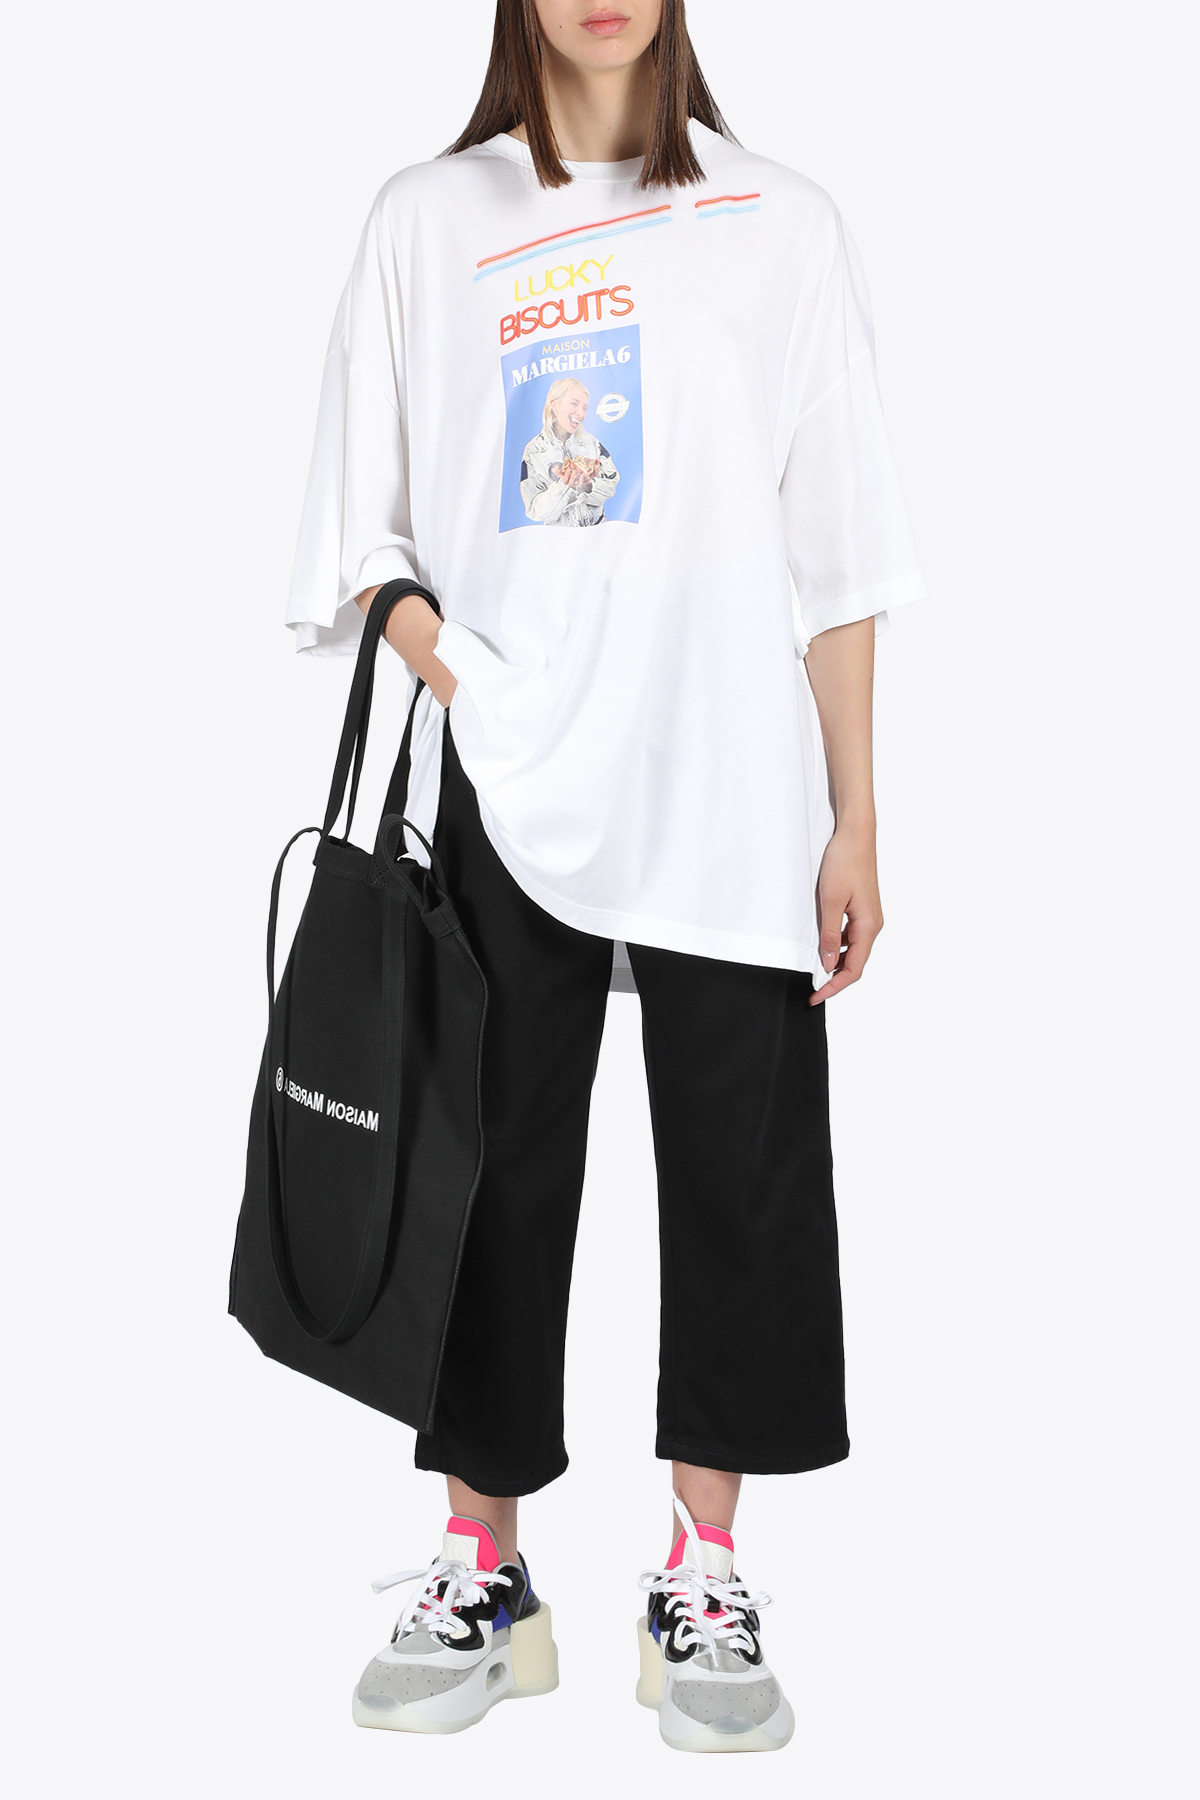 LUCKY BISCUITS T-SHIRT MM6 MAISON MARGIELA | 8 | S52GC0179 S23588100